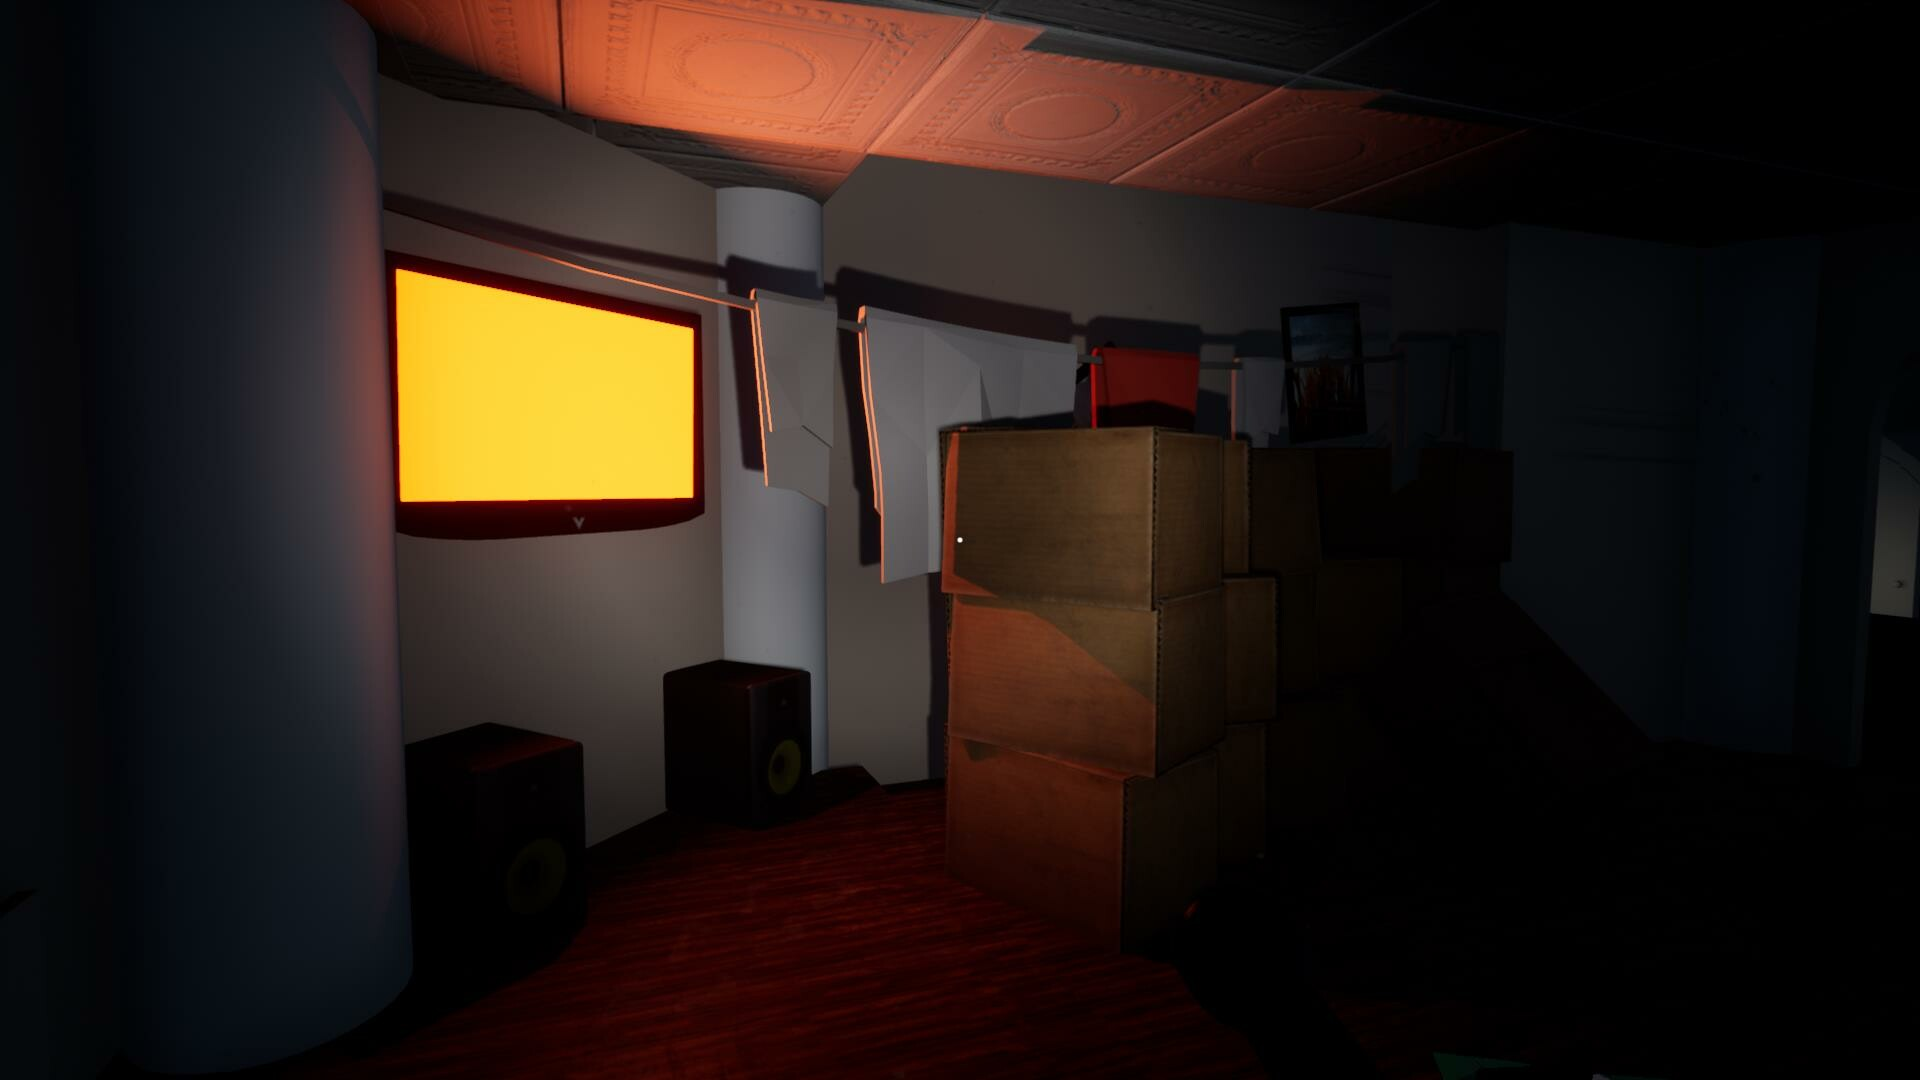 The orange glow illuminates a secret path behind rows of boxes